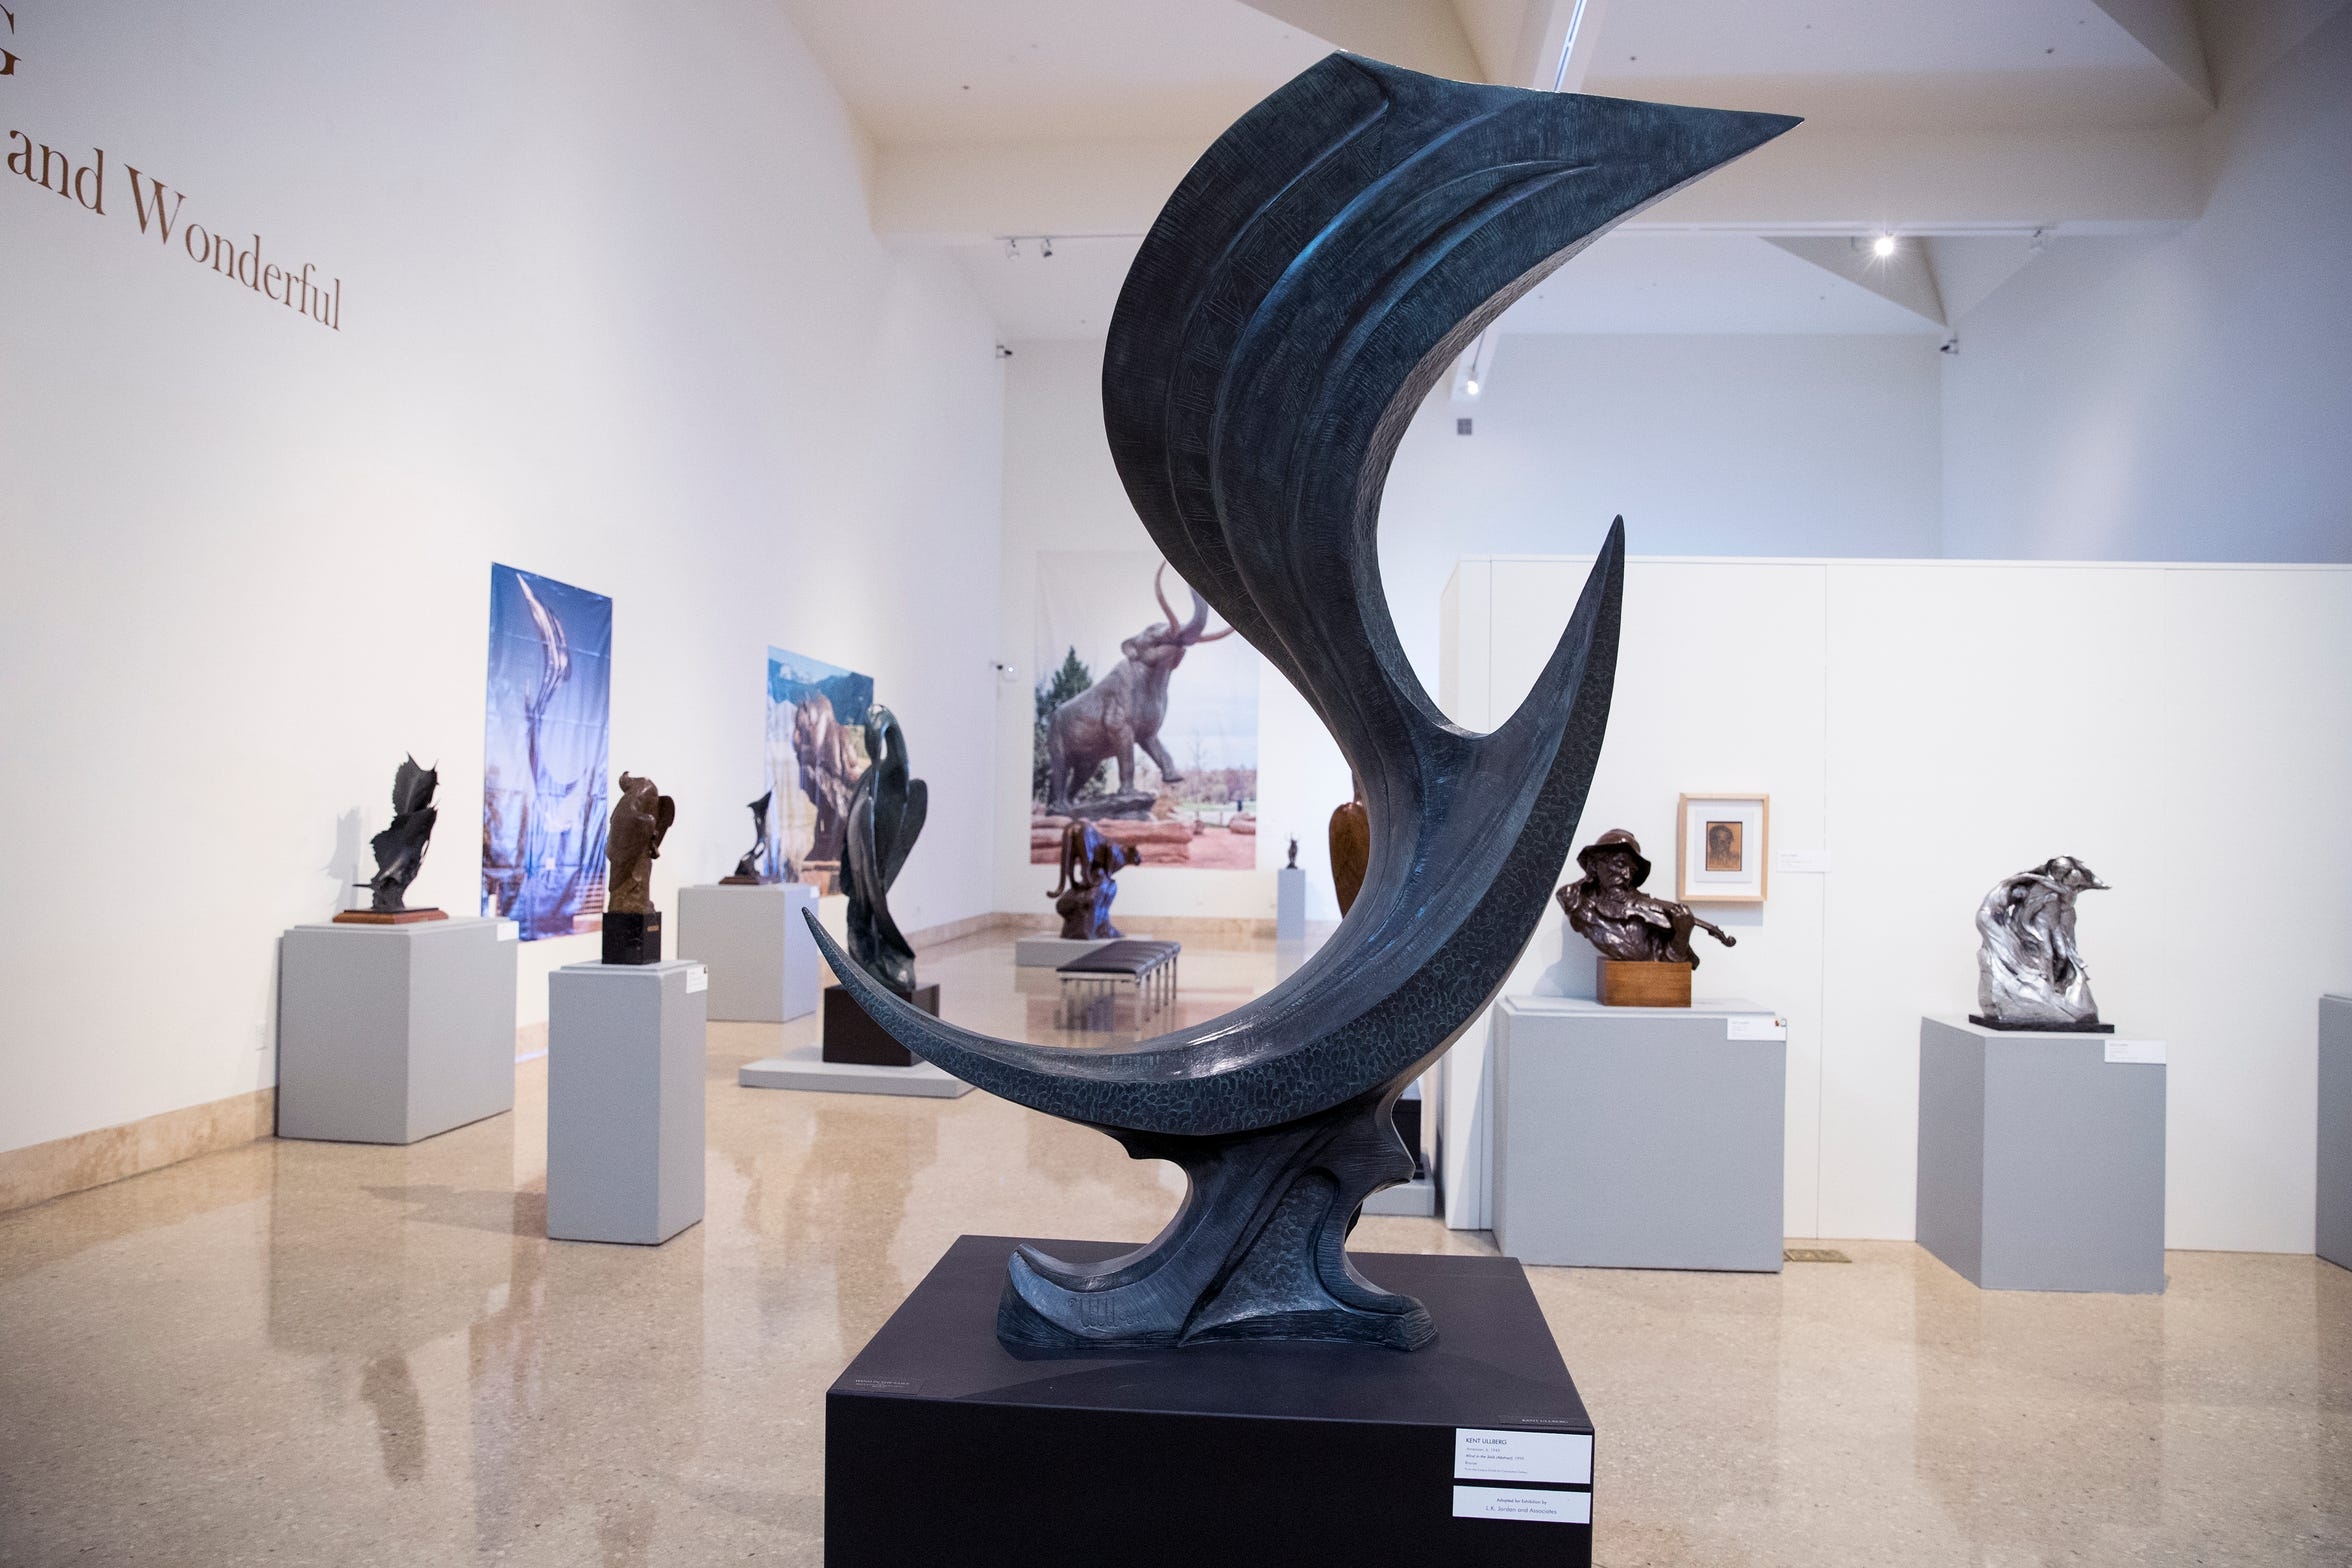 """Kent Ullberg: Celebrating the Wild and Wonderful"" is currently on display at the Art Museum of South Texas. It includes 65 sculptures by Kent Ullberg spanning his career, seven large scale photos of sculptures and five educational technology stations. The exhibit spans five galleries at the museum. ""Wind in the Sails (Abstract)""  is one of the sculptures on exhibit."